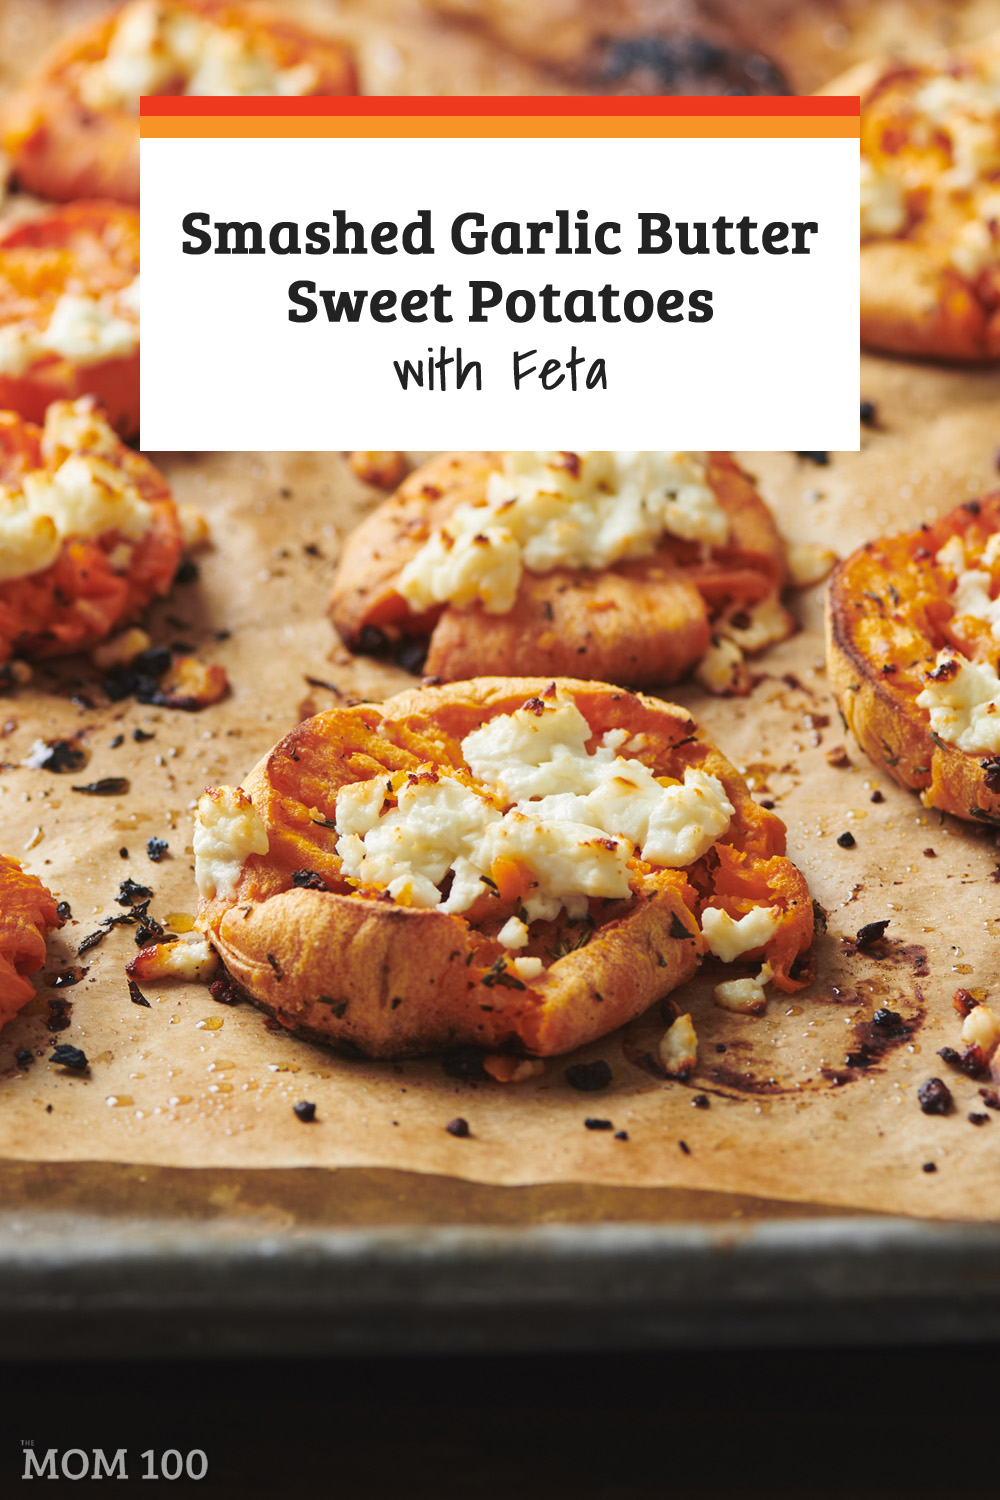 Smashed Garlic Butter Sweet Potatoes with Feta: Tender with crispy edges, and a pop of salty cheese and fresh parsley, these savory sweet potatoes are an easy but festive side dish. #sidedish #vegetarian #gf